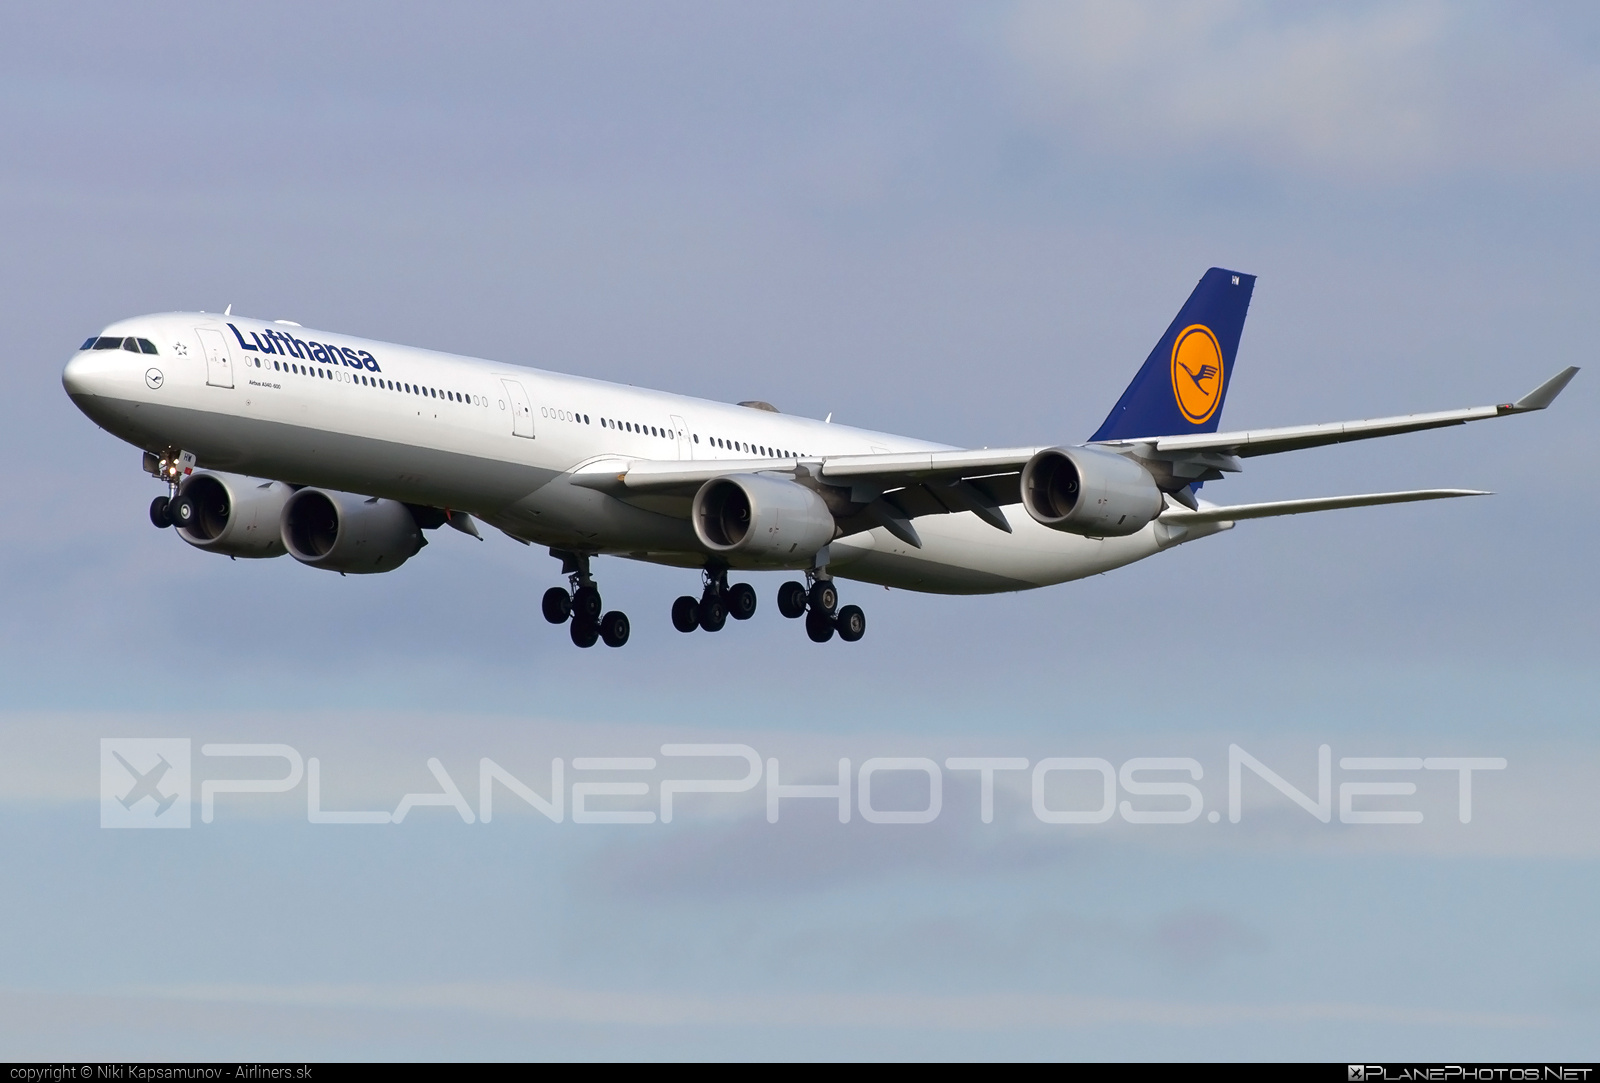 Airbus A340-642X - D-AIHW operated by Lufthansa #a340 #a340family #airbus #airbus340 #lufthansa